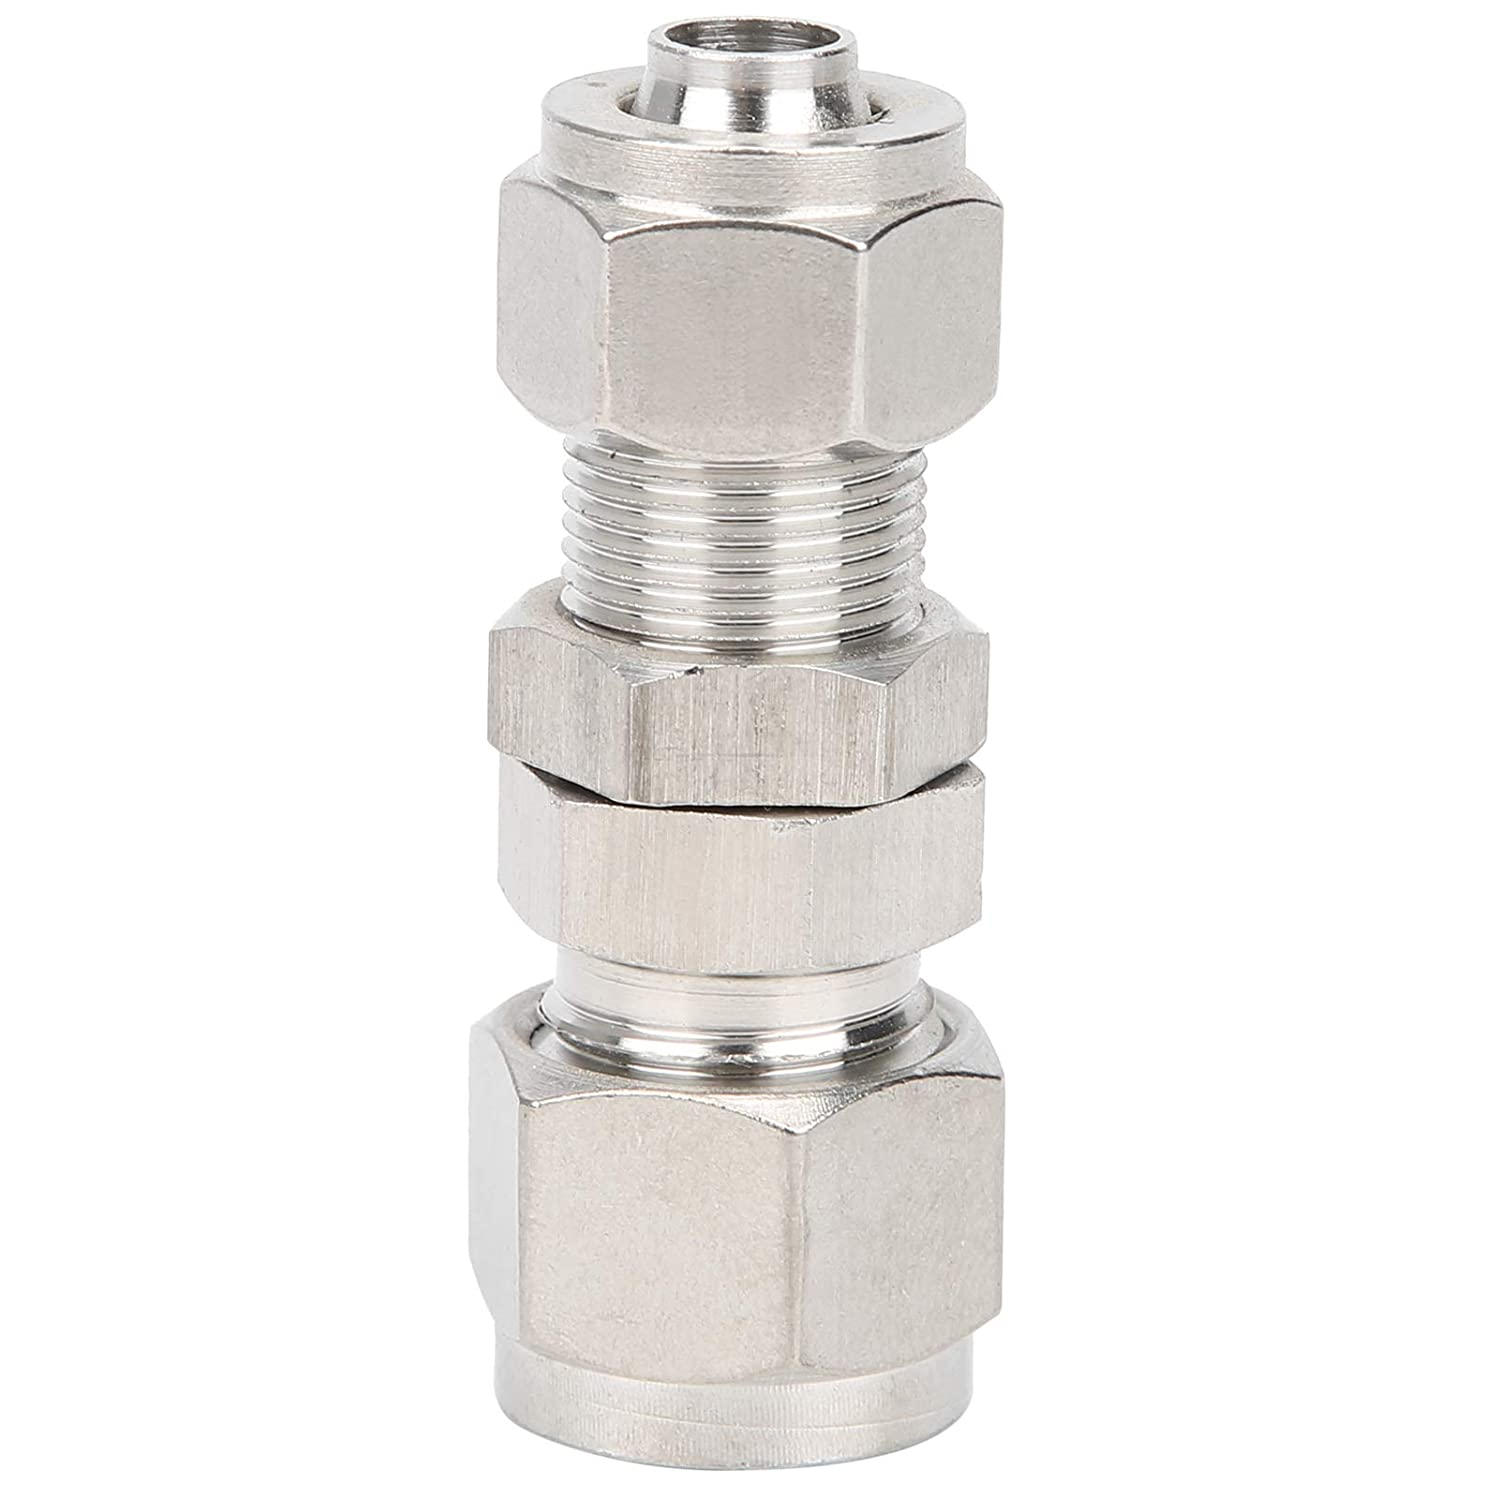 4Pcs Ferrule Compression Fitting 304 Stainless Steel Crack Prevention Simple and Convenient Possess Firm Connection for Hard Tube Conversion Hose Ф108